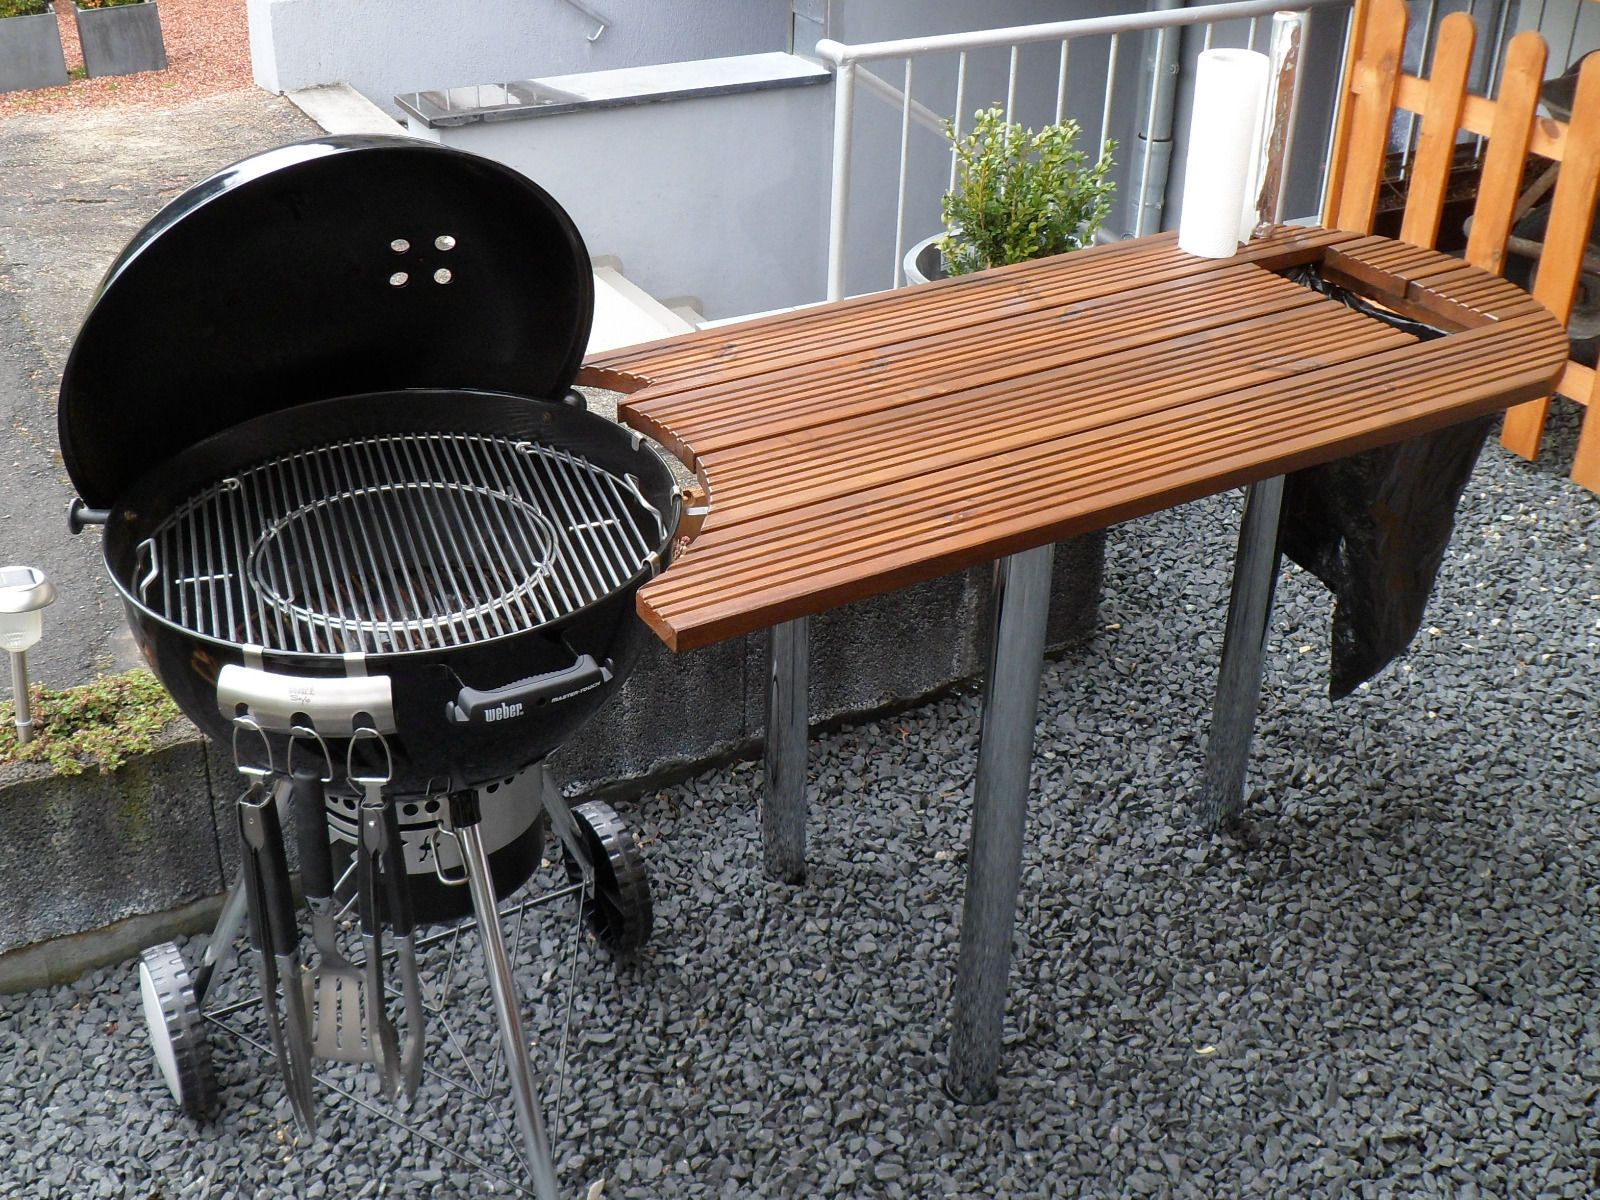 tisch f r weber grill one touch 57cm beesondere grills. Black Bedroom Furniture Sets. Home Design Ideas